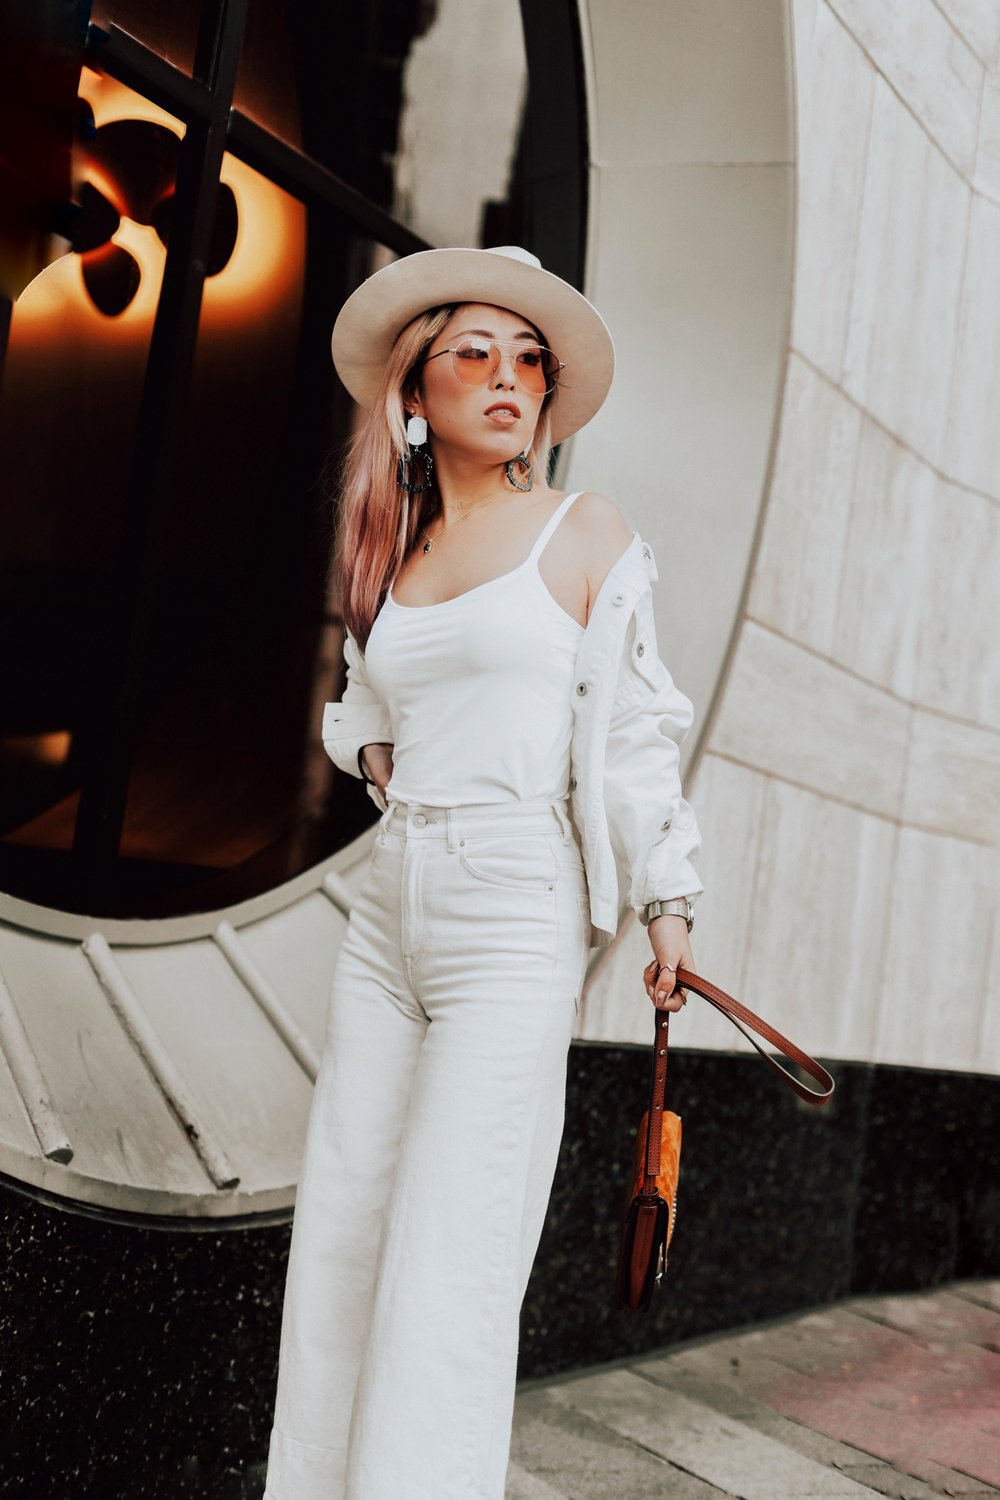 Uniqlo AIRism Bratop_Uniqlo White Denim Jacket_H&M White Cropped flare jeans-Lack Of color Ivory Bone Fedora_ASOS Marble Drop Earrings_Chloe Blown Small Faye Leather Shoulder Bag-Zero UV Sunglasses-Nude Lace Up Heels-Aikas Love Closet-Seattle Fashion Blogger-Japanese-pink hair-petite 8